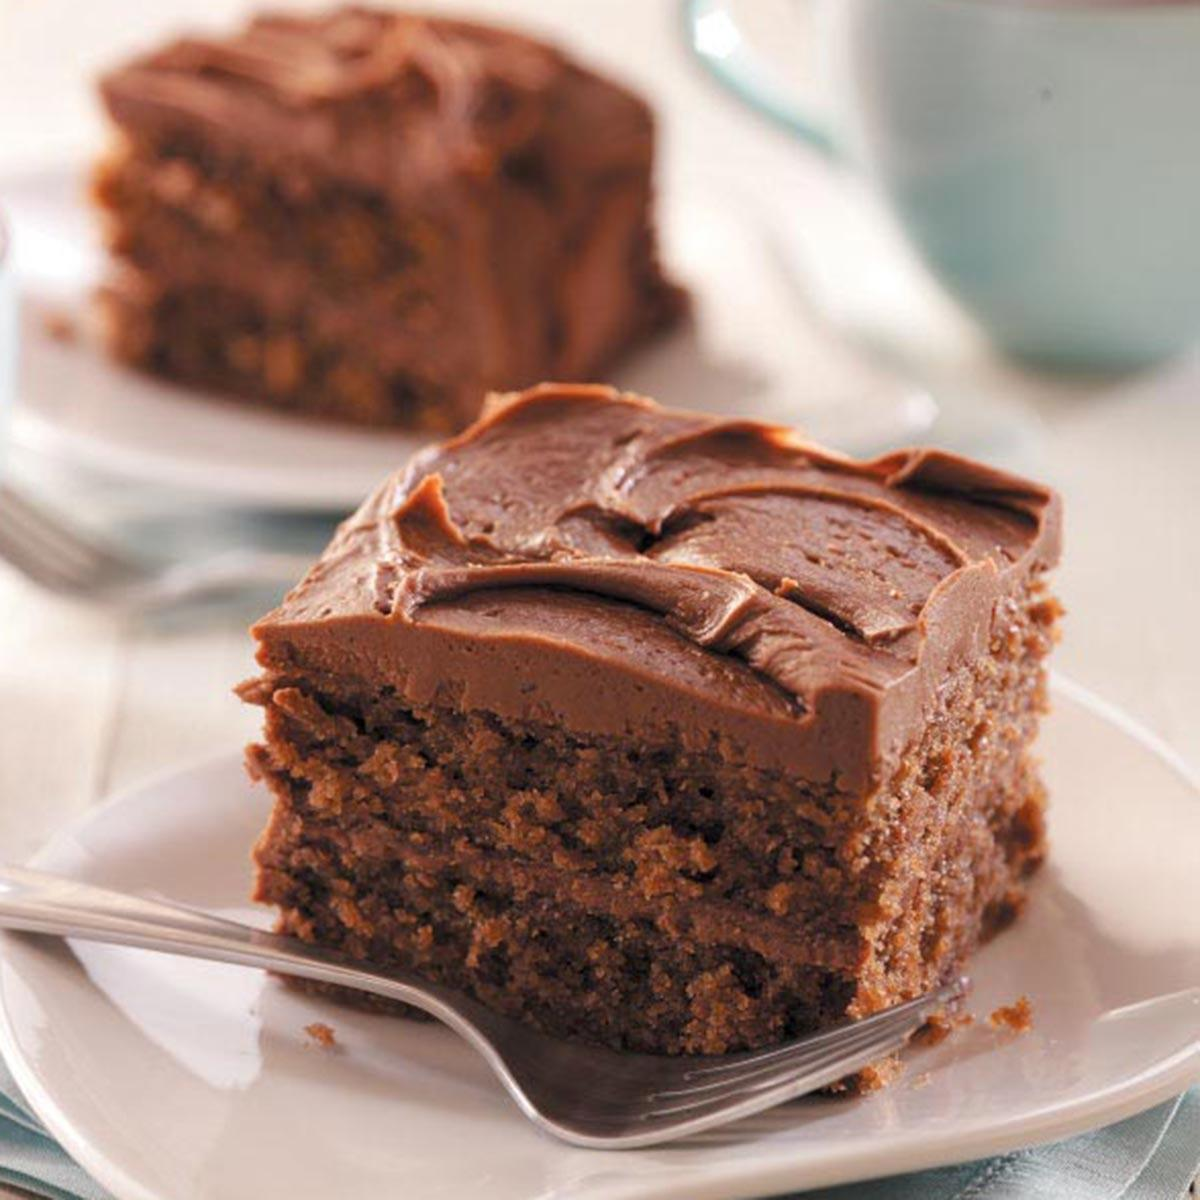 Chocolate Cake With Cocoa Frosting Recipe